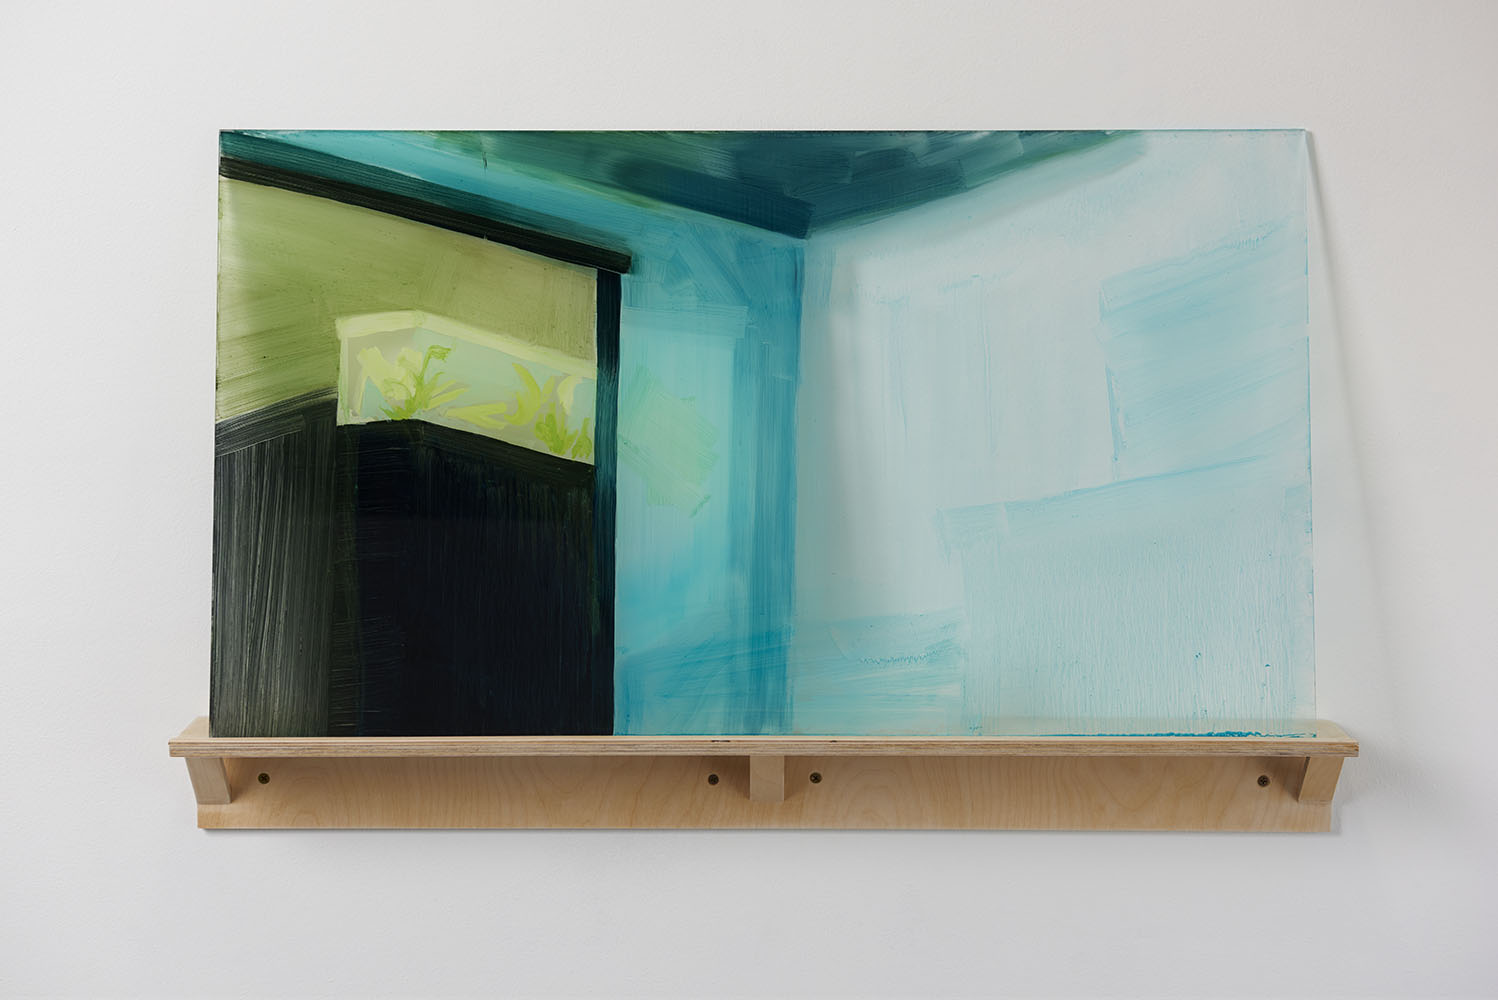 Devaneios    2015  óleo sobre acrílico, prateleira de bétula,  Pintura 46 x 82 x 0.64 cm., prateleira 10 x 86 x 9 cm.   ⬜     Racing thoughts    2015  Oil paint on plexiglass, artist-made birch shelf,  18'' x 32'' x 0.25'' plexi, 4'' x 34'' x 3.5'' shelf